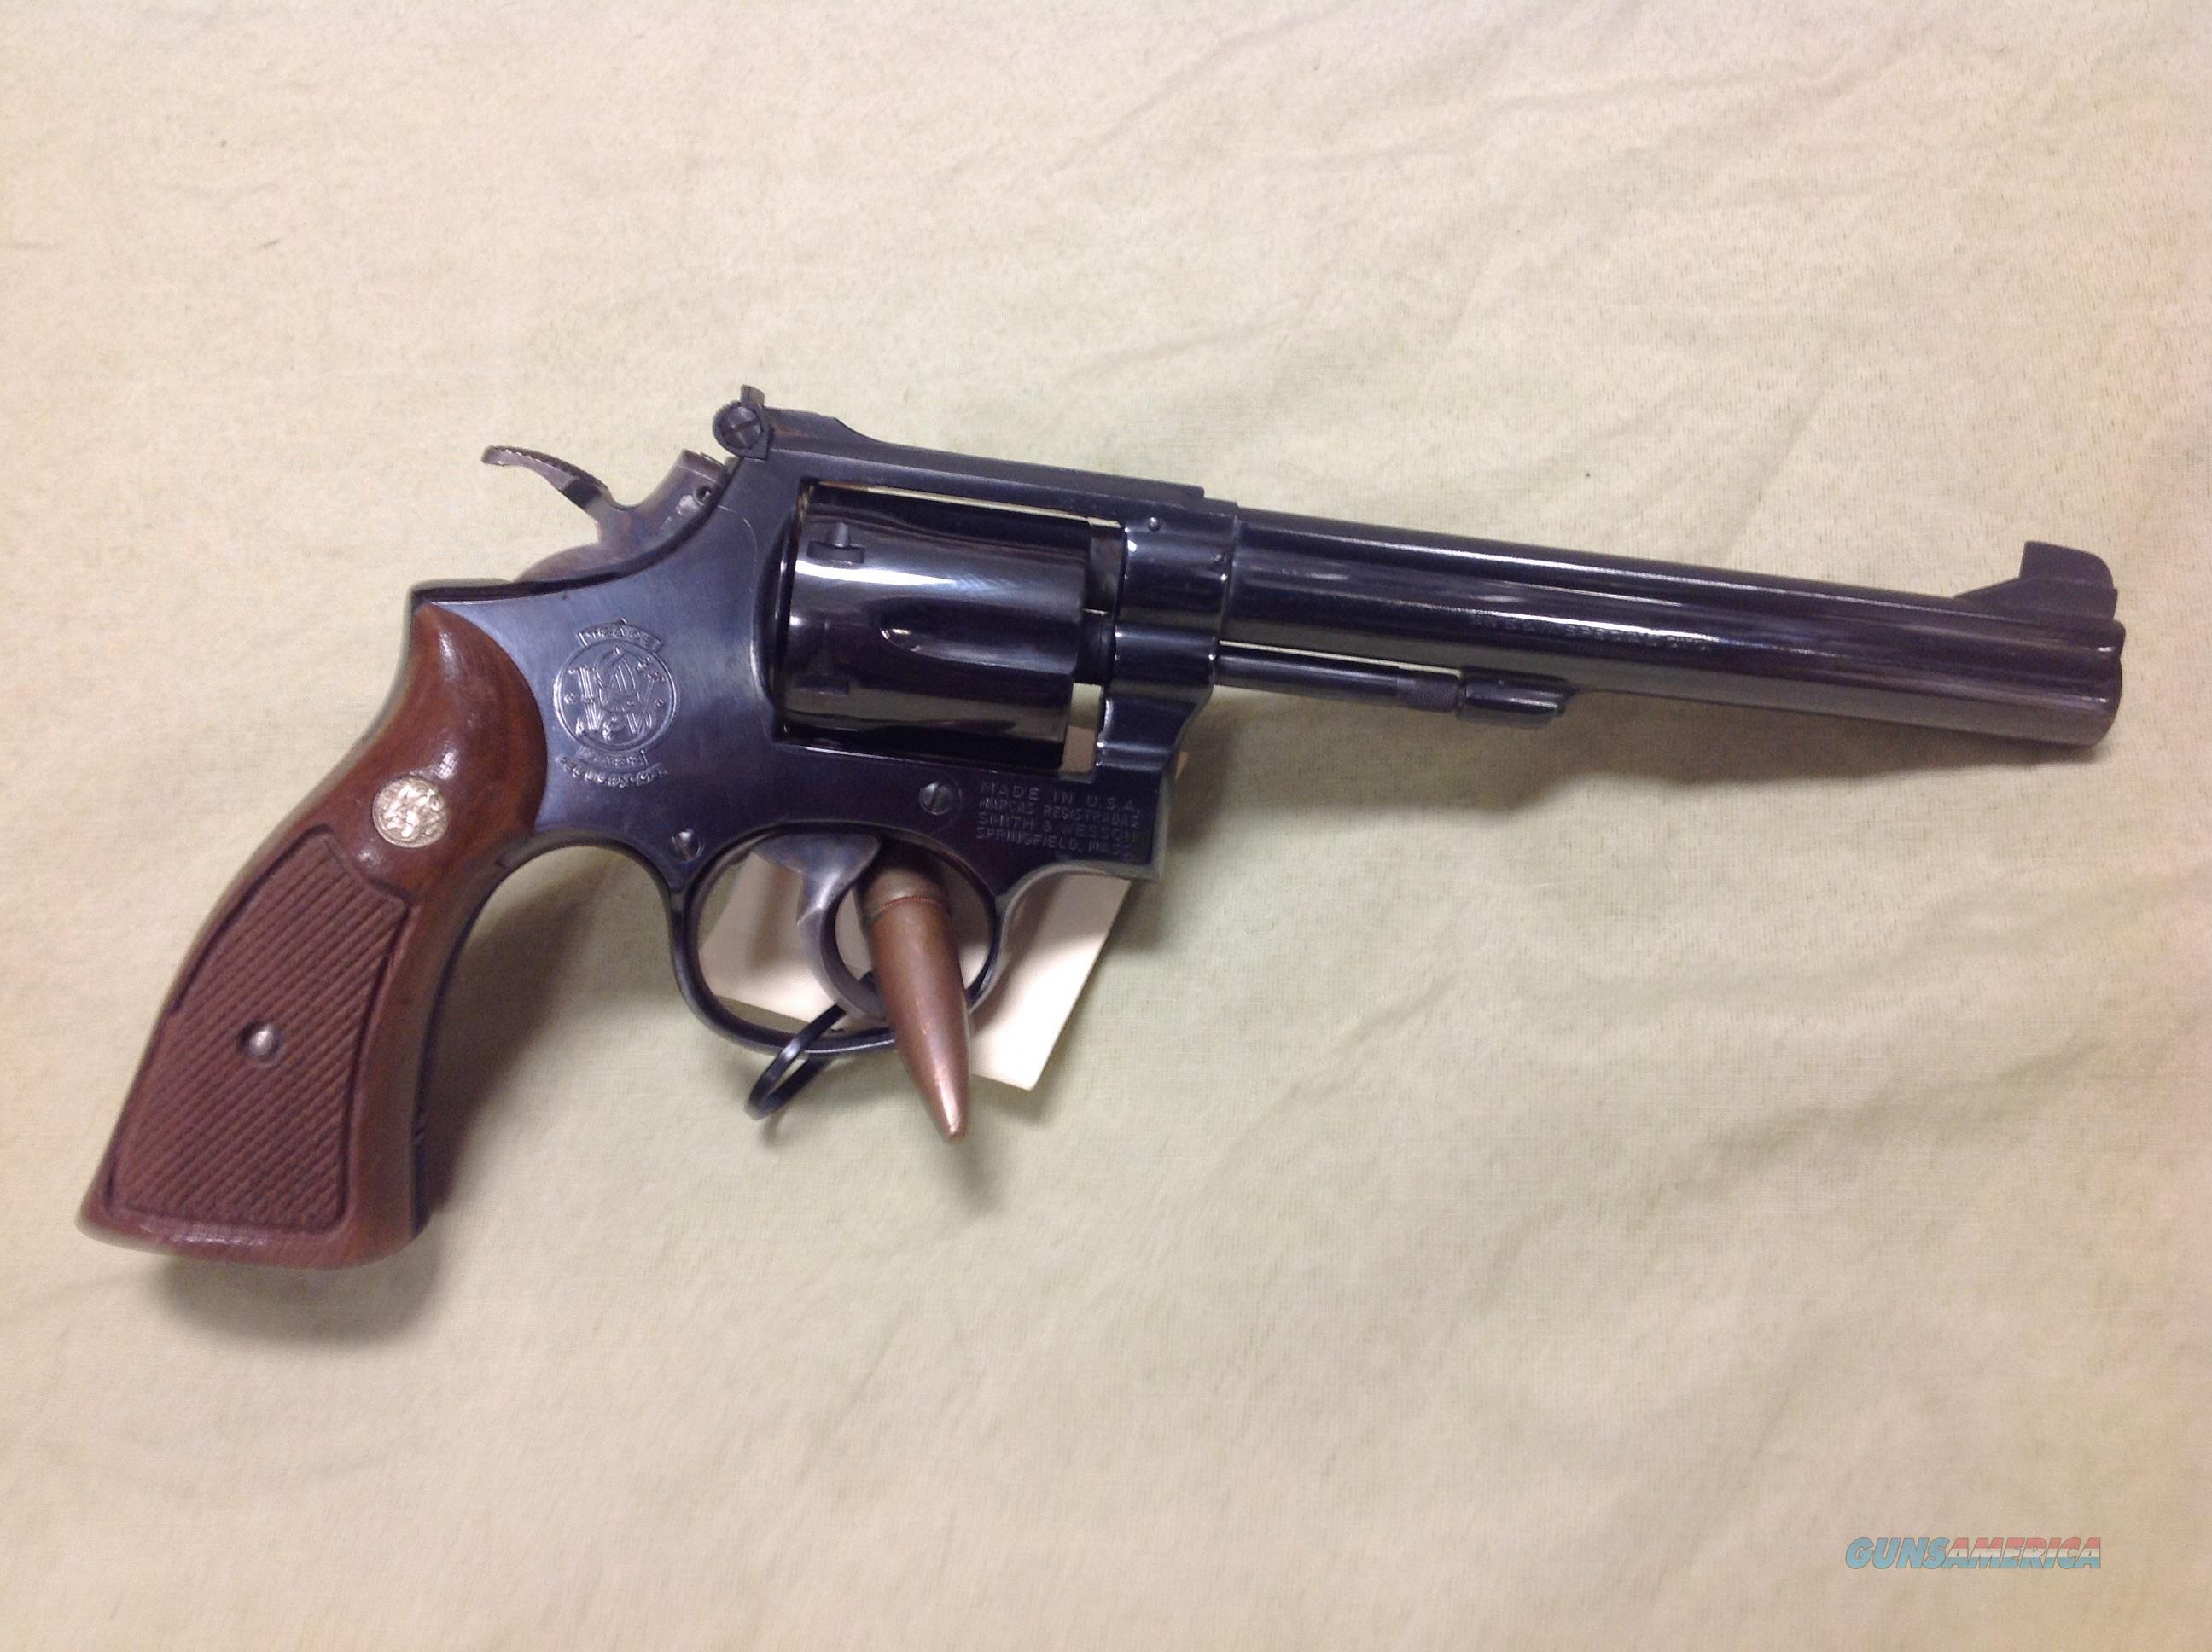 Smith & Wesson model 14-3 38 special target model  Guns > Pistols > Smith & Wesson Revolvers > Full Frame Revolver